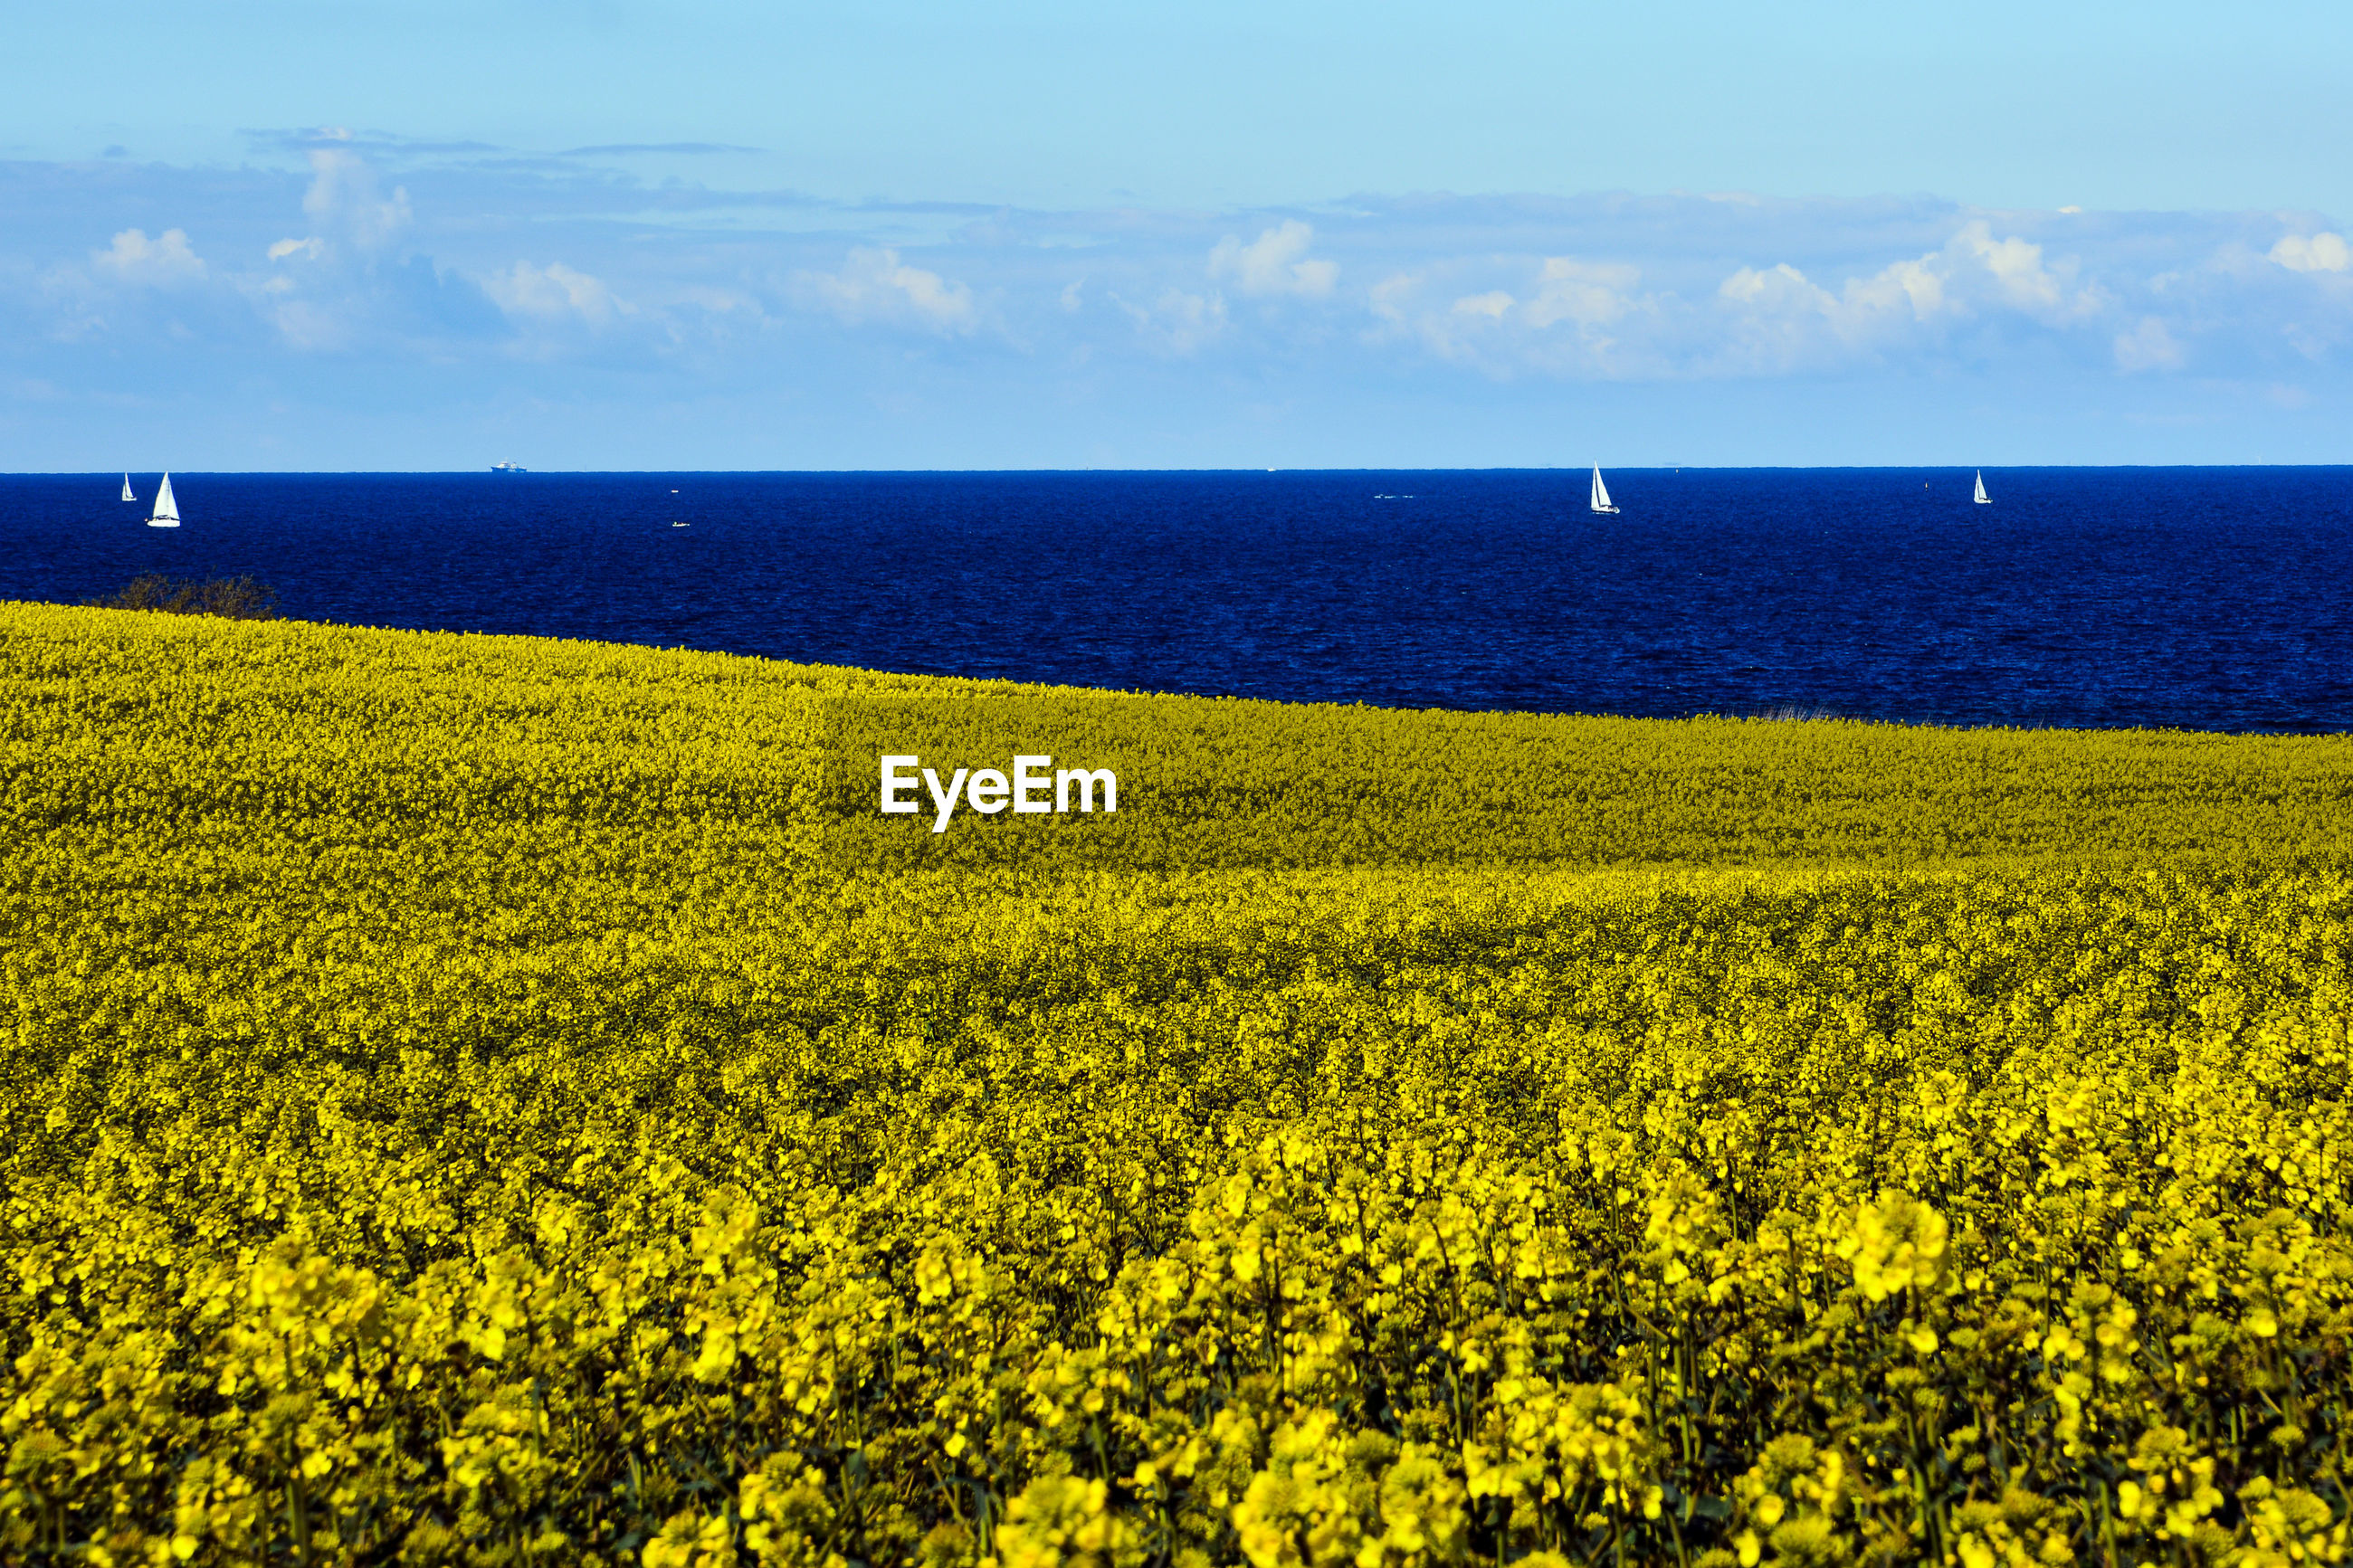 SCENIC VIEW OF YELLOW FLOWER GROWING ON FIELD AGAINST SEA